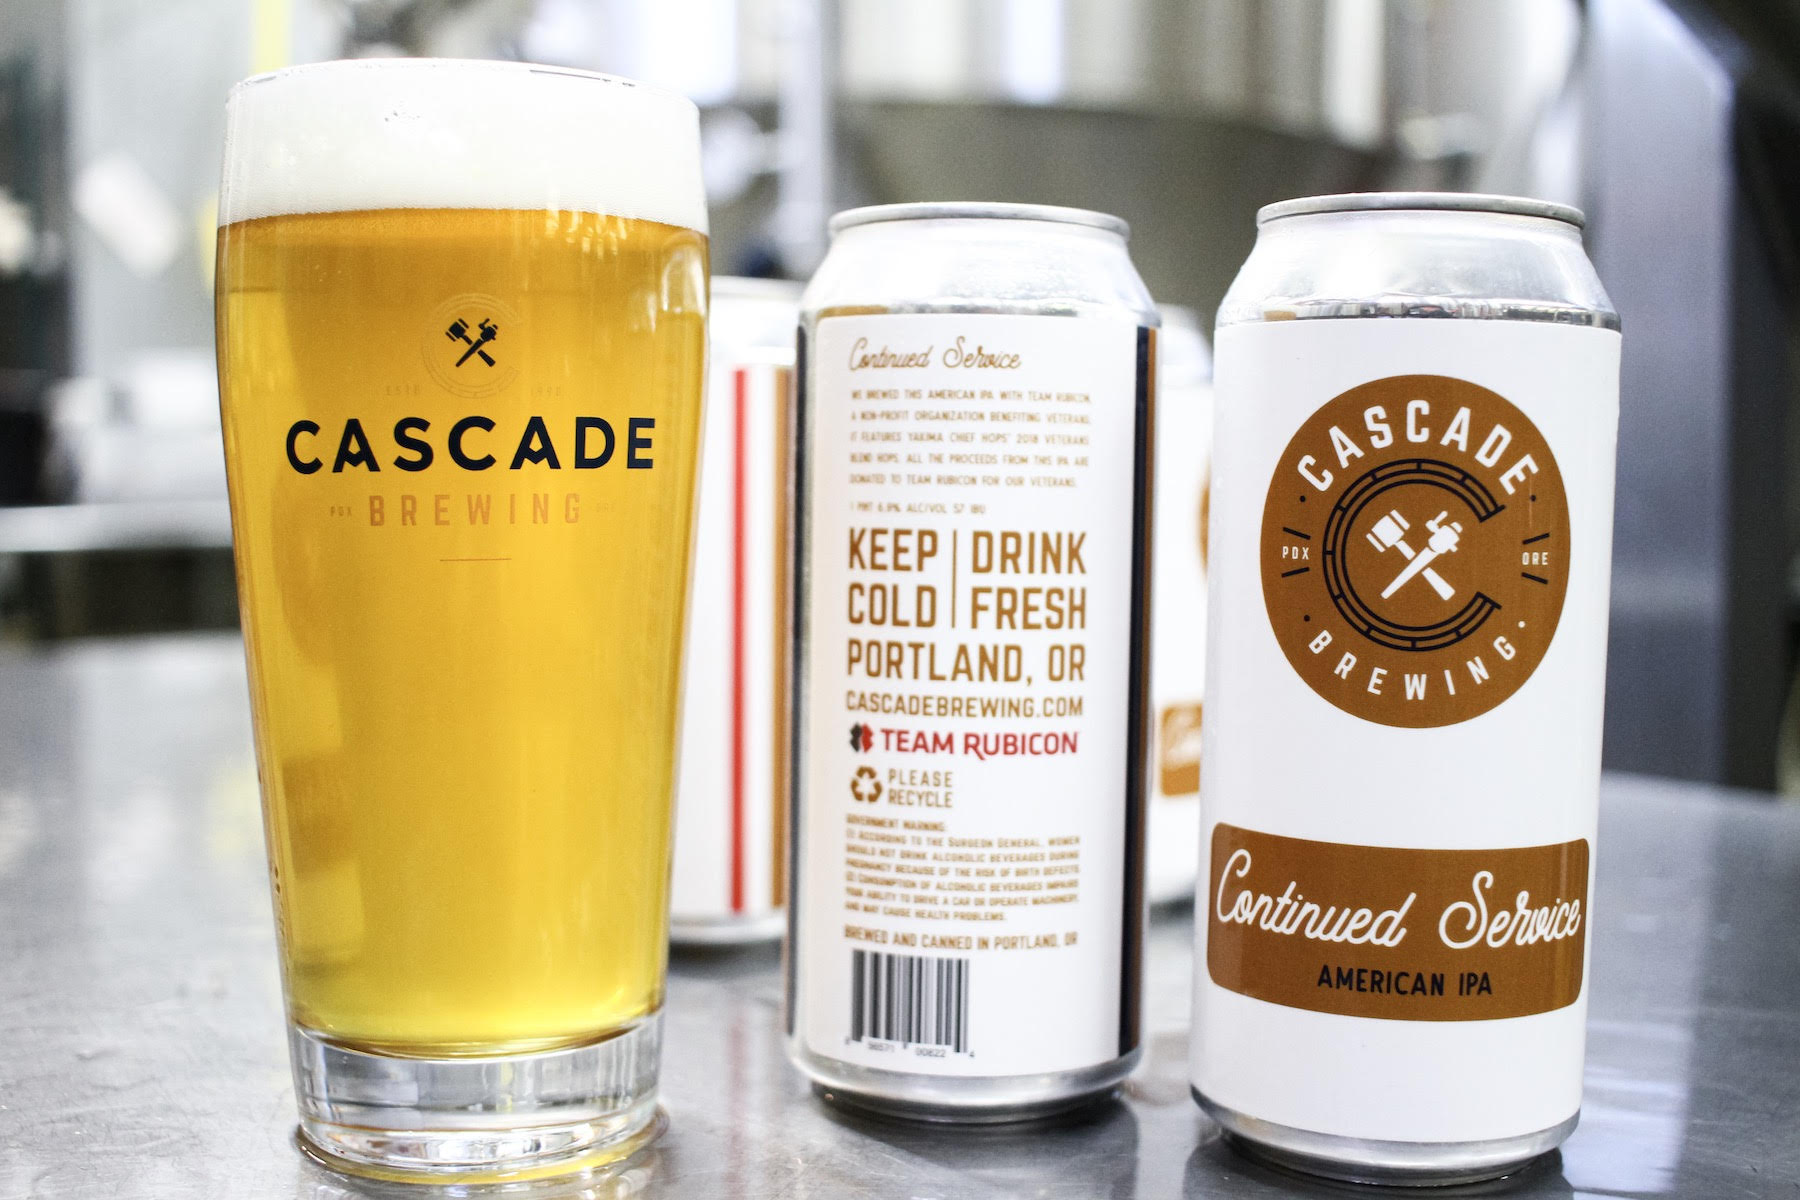 Cascade Brewing Collaborates with Team Rubicon on Continued Service IPA for Veterans Day. (image courtesy of Cascade Brewing)